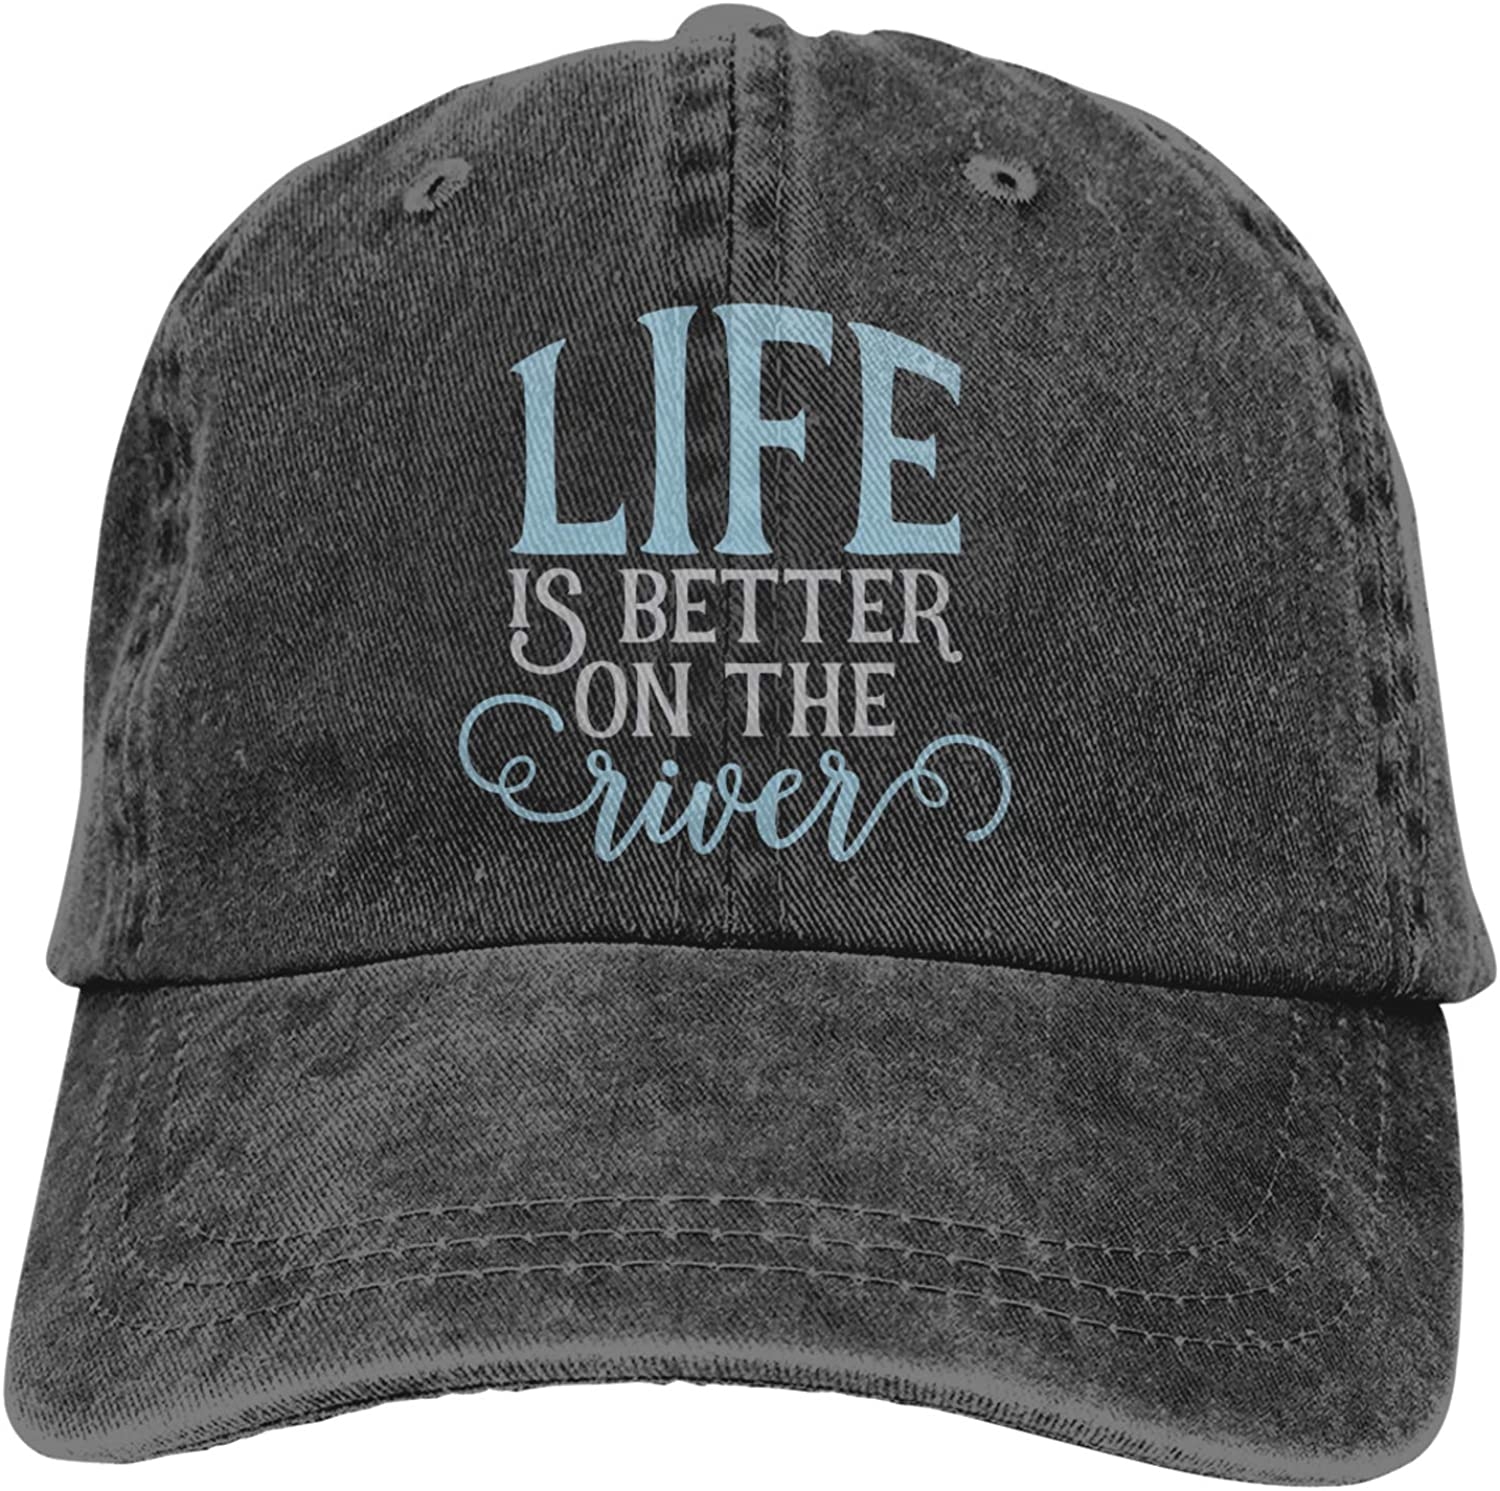 Life is Better On The River Outdoor Men's Baseball Cap Sports and Leisure Adjustable Cowboy Hat Performance Cap Black